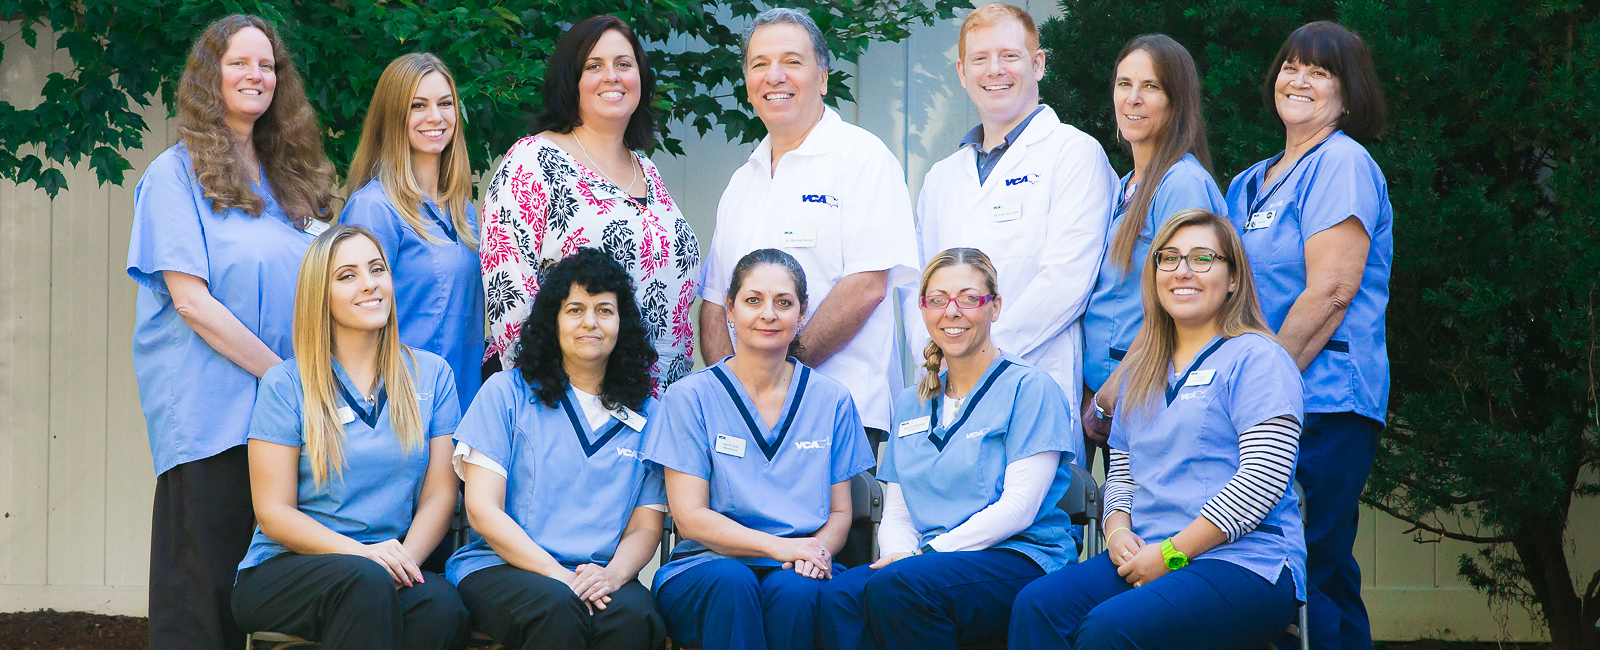 Team Picture of VCA Closter Animal Hospital